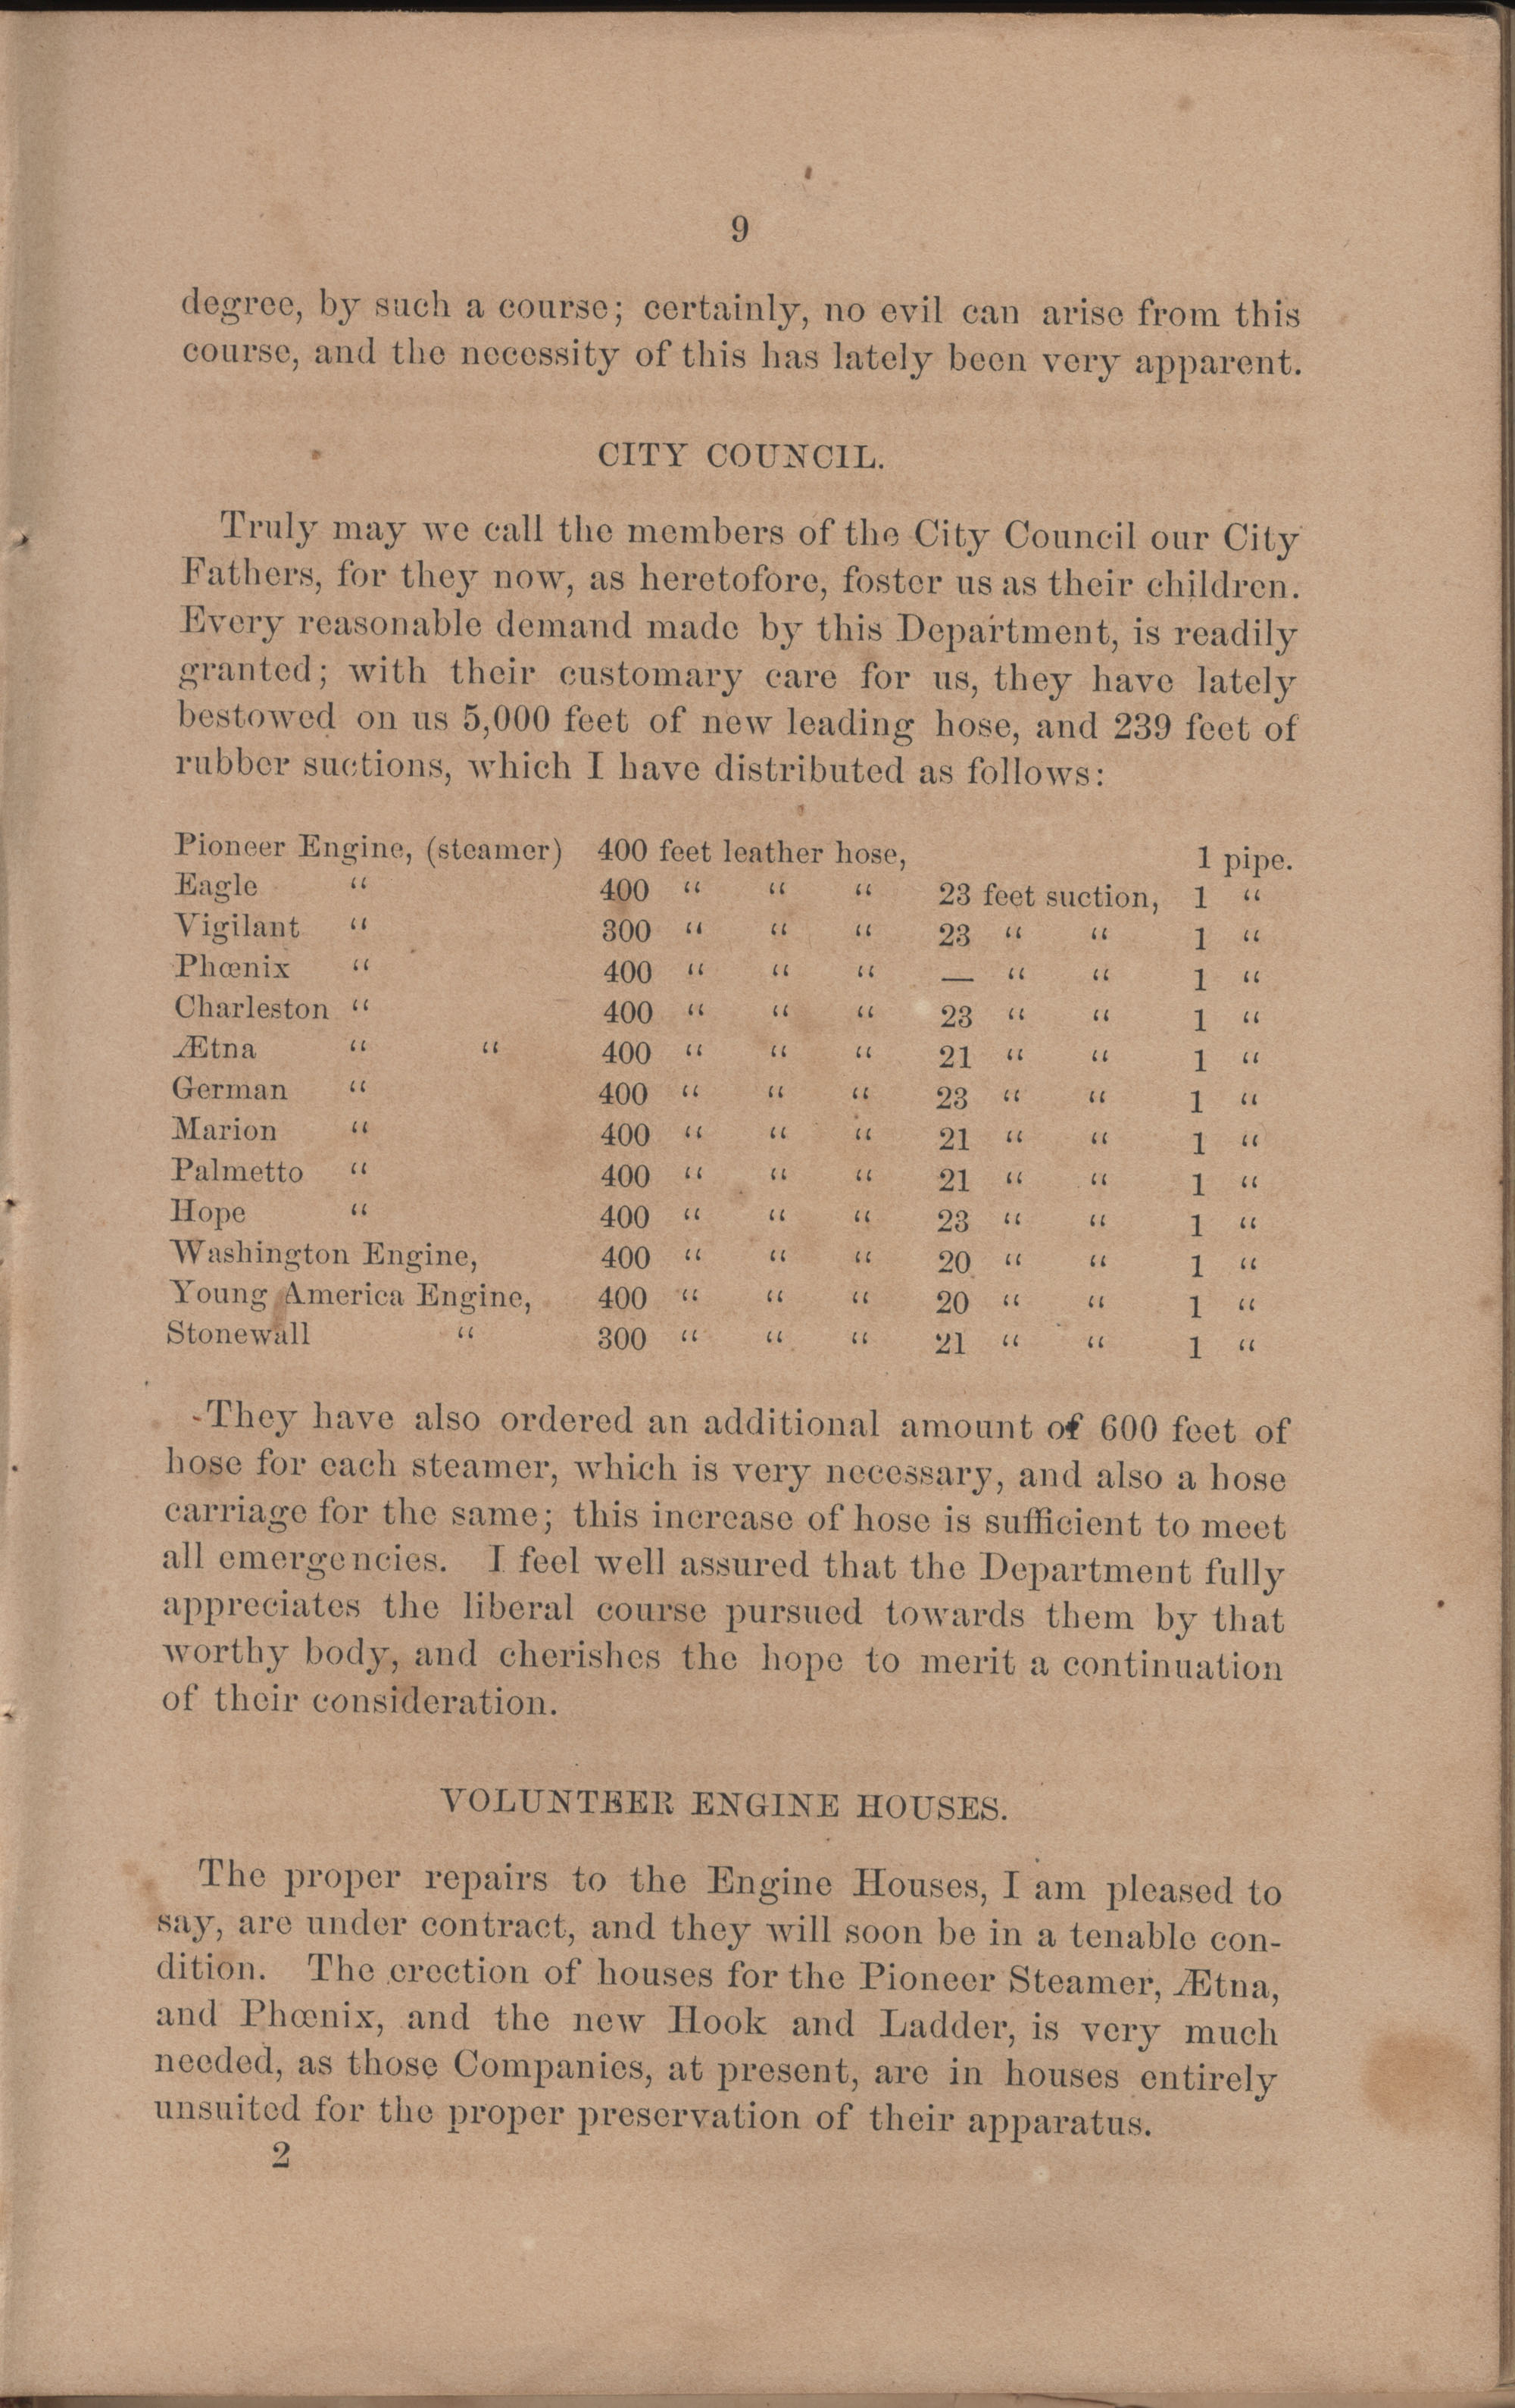 Annual Report of the Chief of the Fire Department of the City of Charleston, page 105